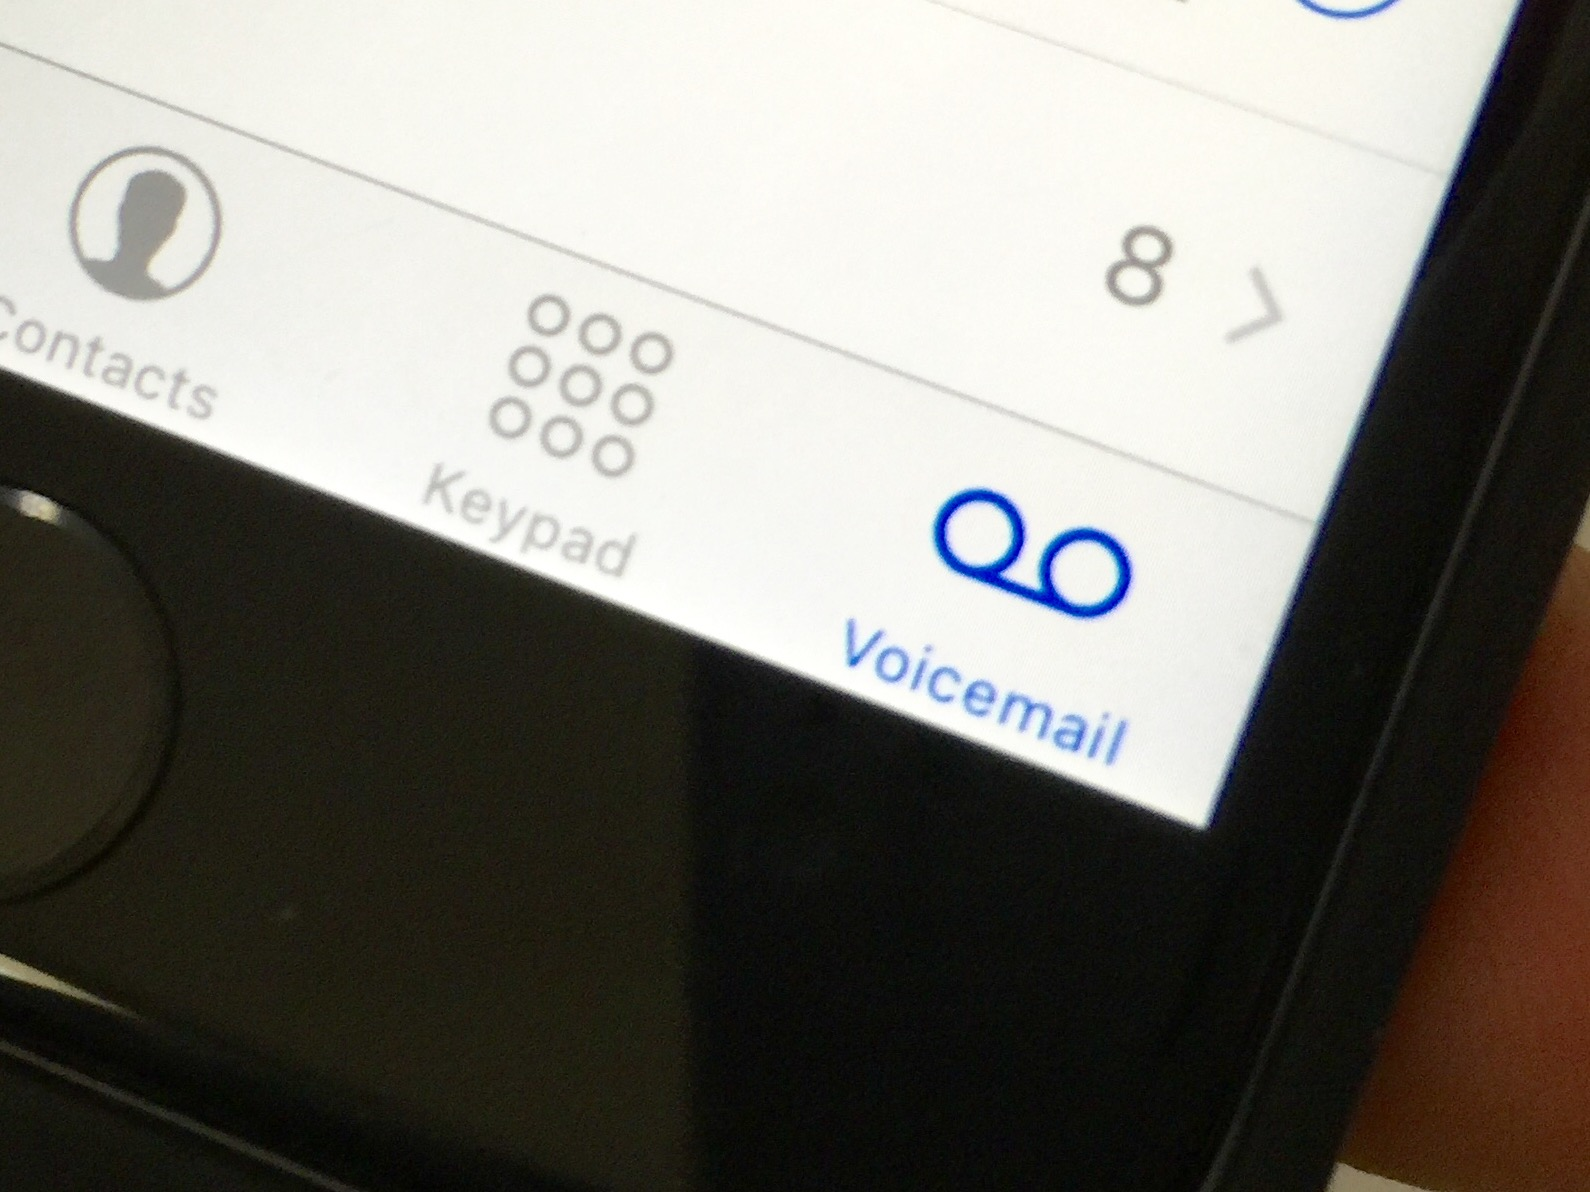 How To Change The Iphone Voicemail Message